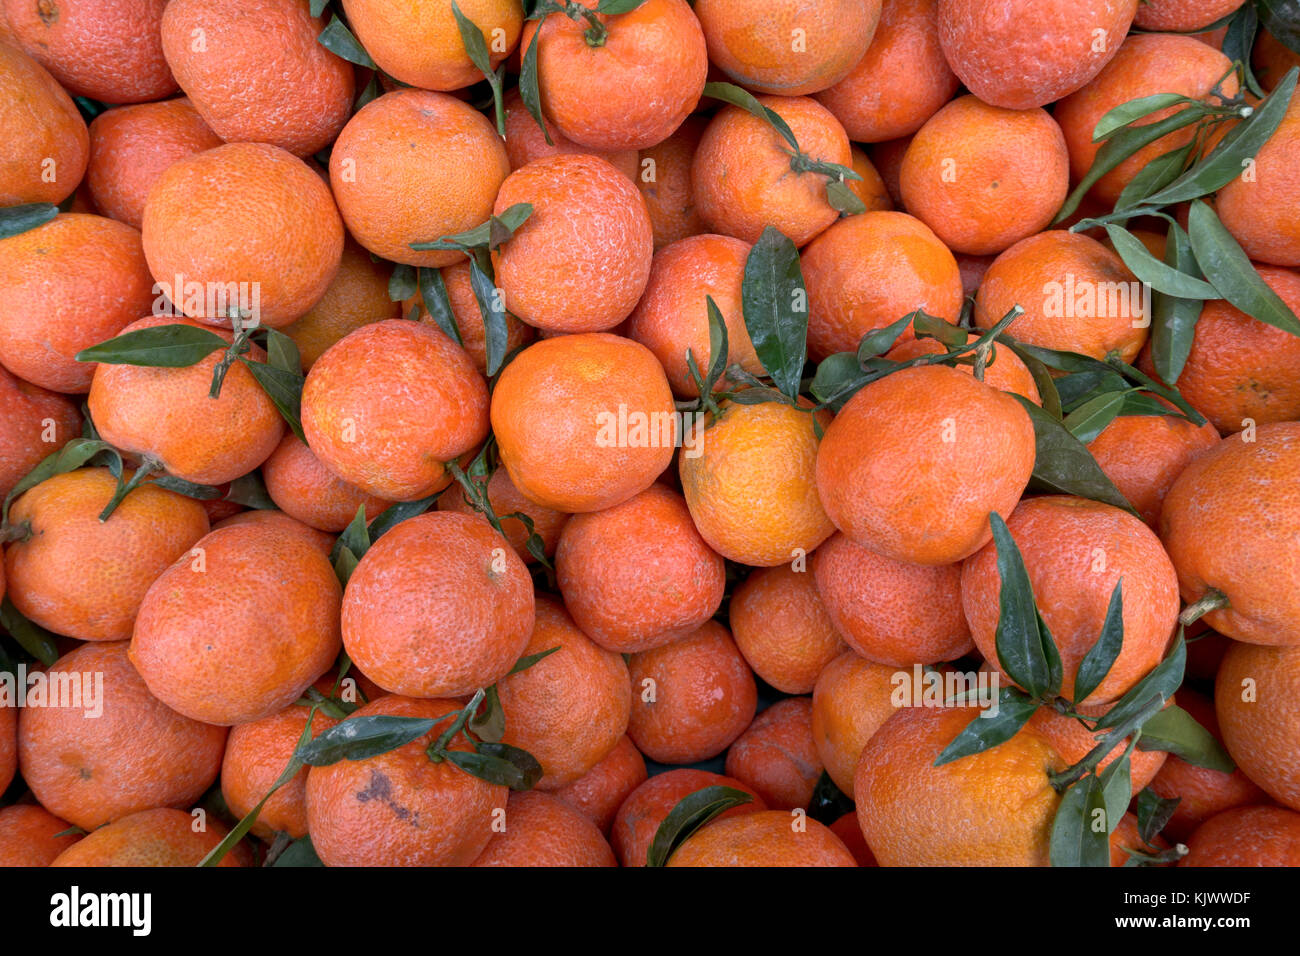 Organic clementines without any surface treatment in Danish supermarket. Notice the wrinkled and somewhat rough - Stock Image